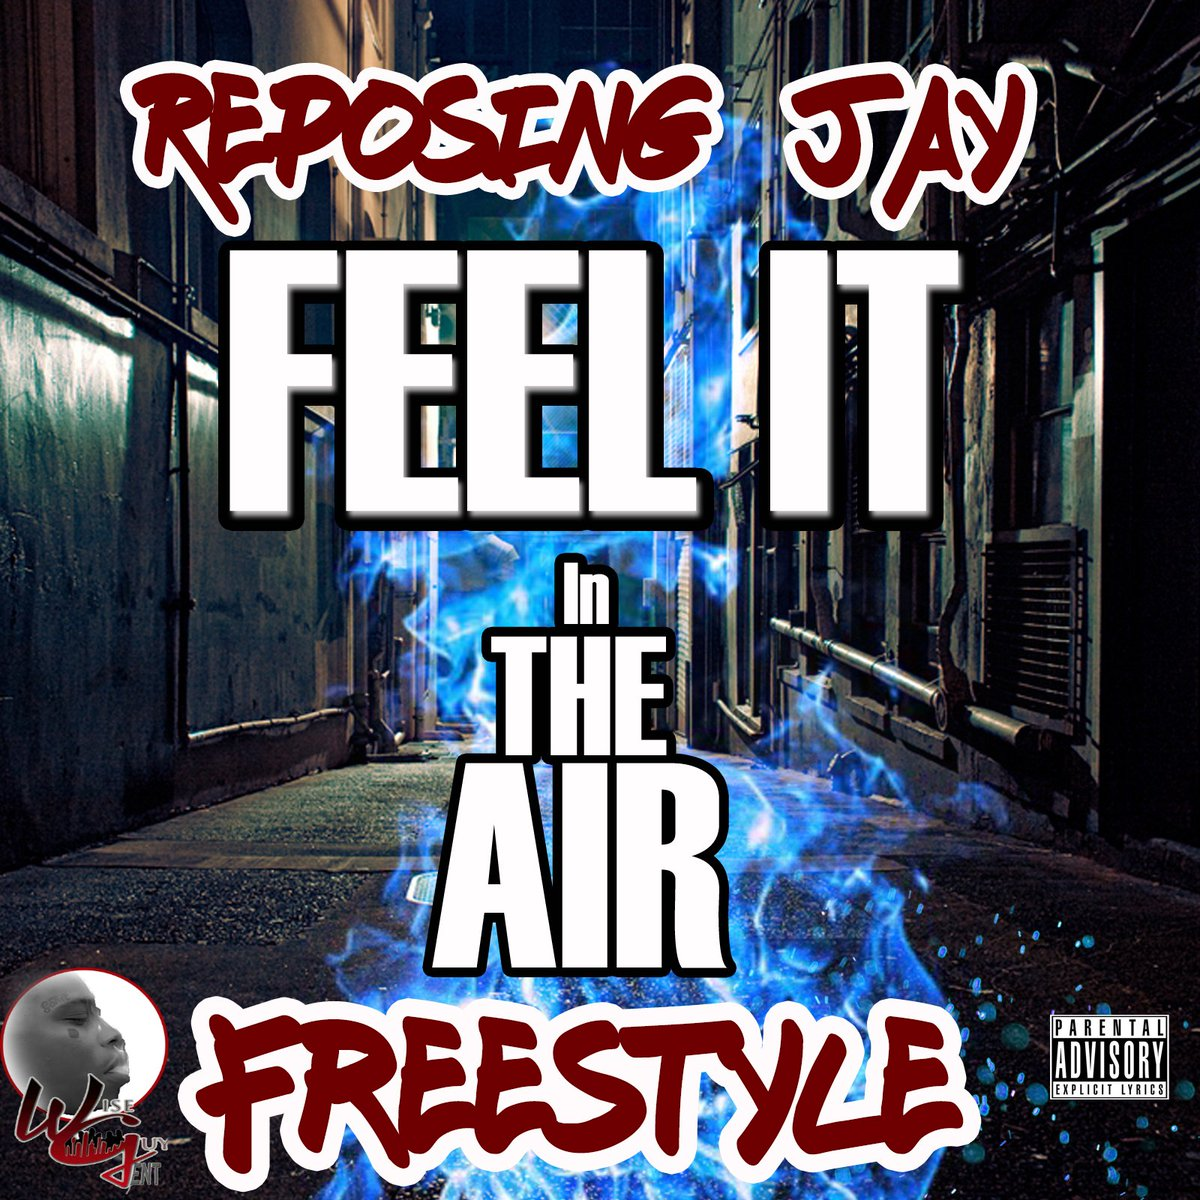 #Blocked again with a #freestyle on a free site that we get no #money what so ever off of!Why da #banned freesyles!?  http://www. reverbnation.com/open_graph/son g/28173250 &nbsp; … <br>http://pic.twitter.com/QsiU9WDVDu